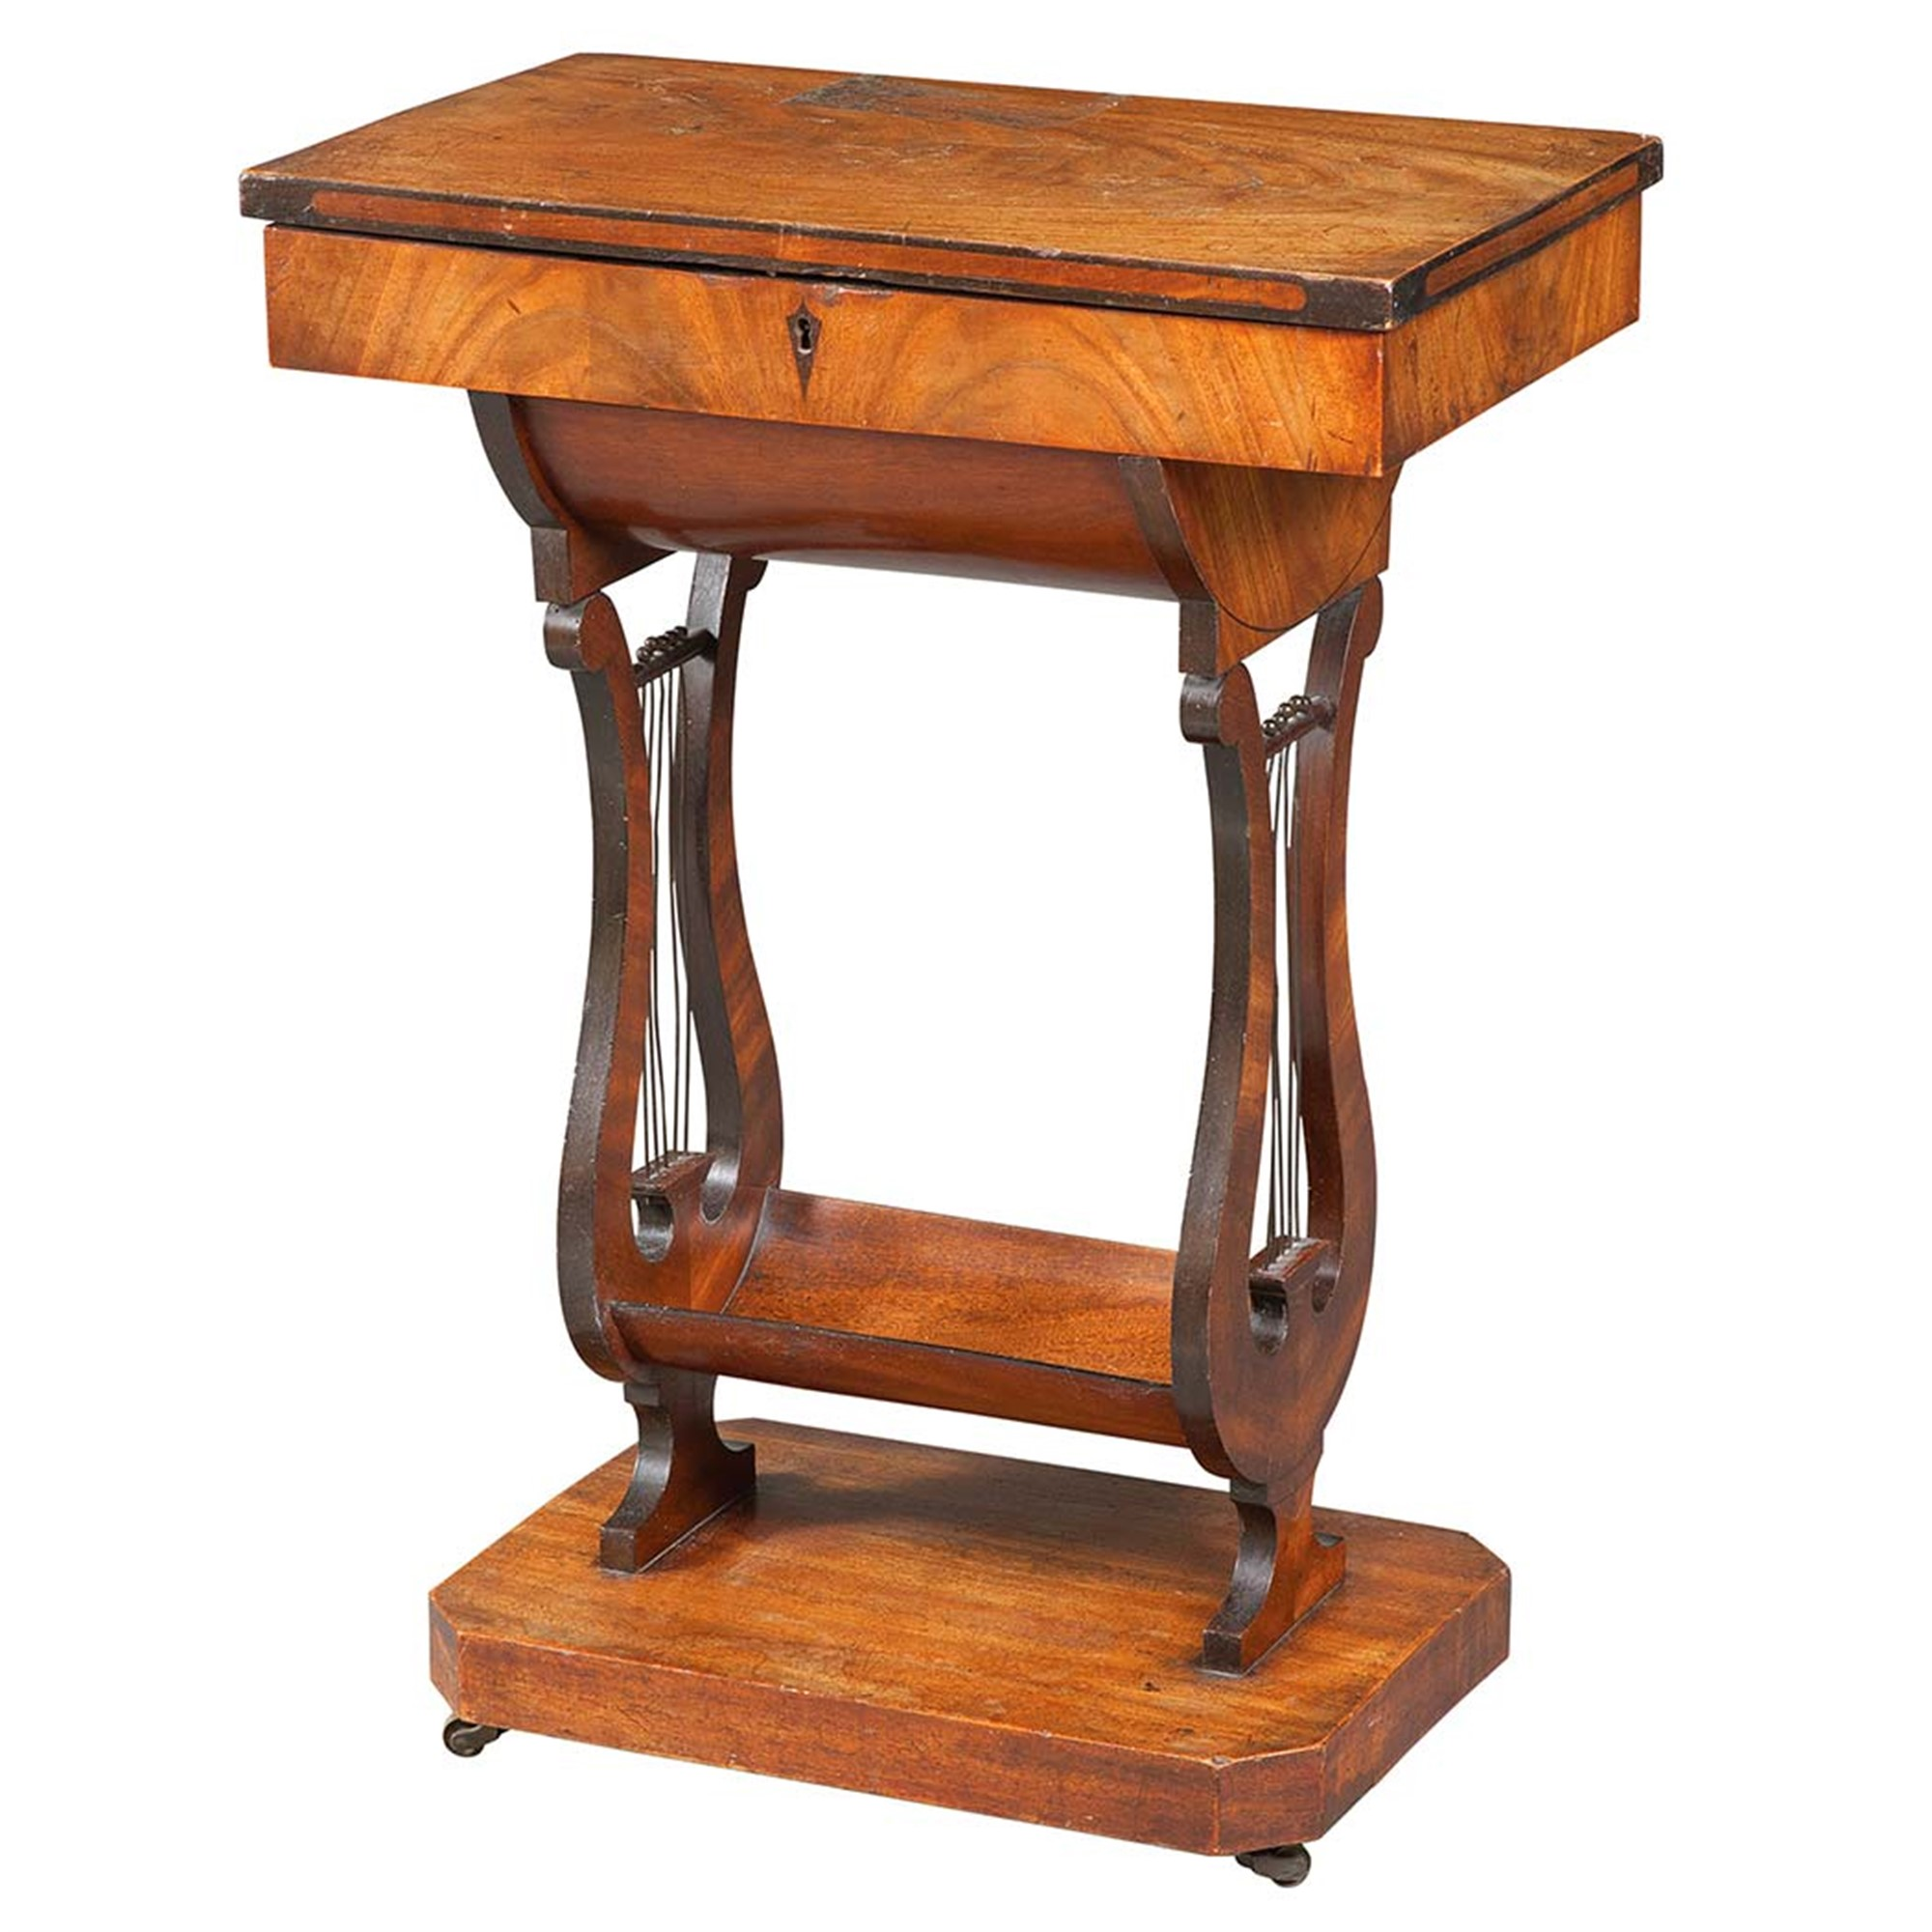 BIEDERMEIER WALNUT WORK TABLE